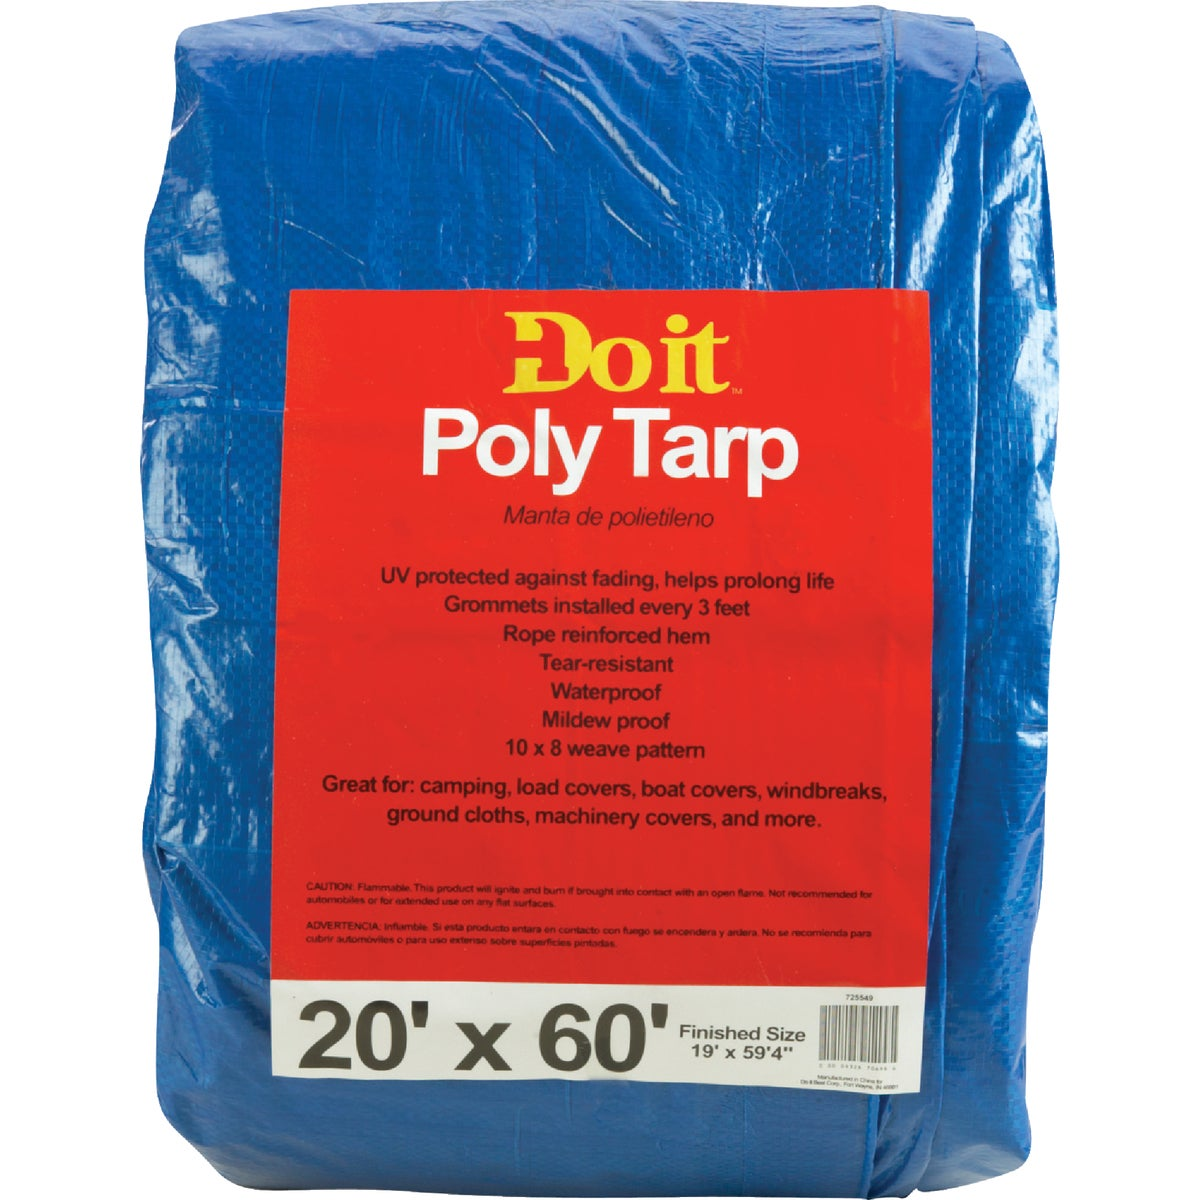 20X60 BLUE MED DUTY TARP - 725549 by Do it Best